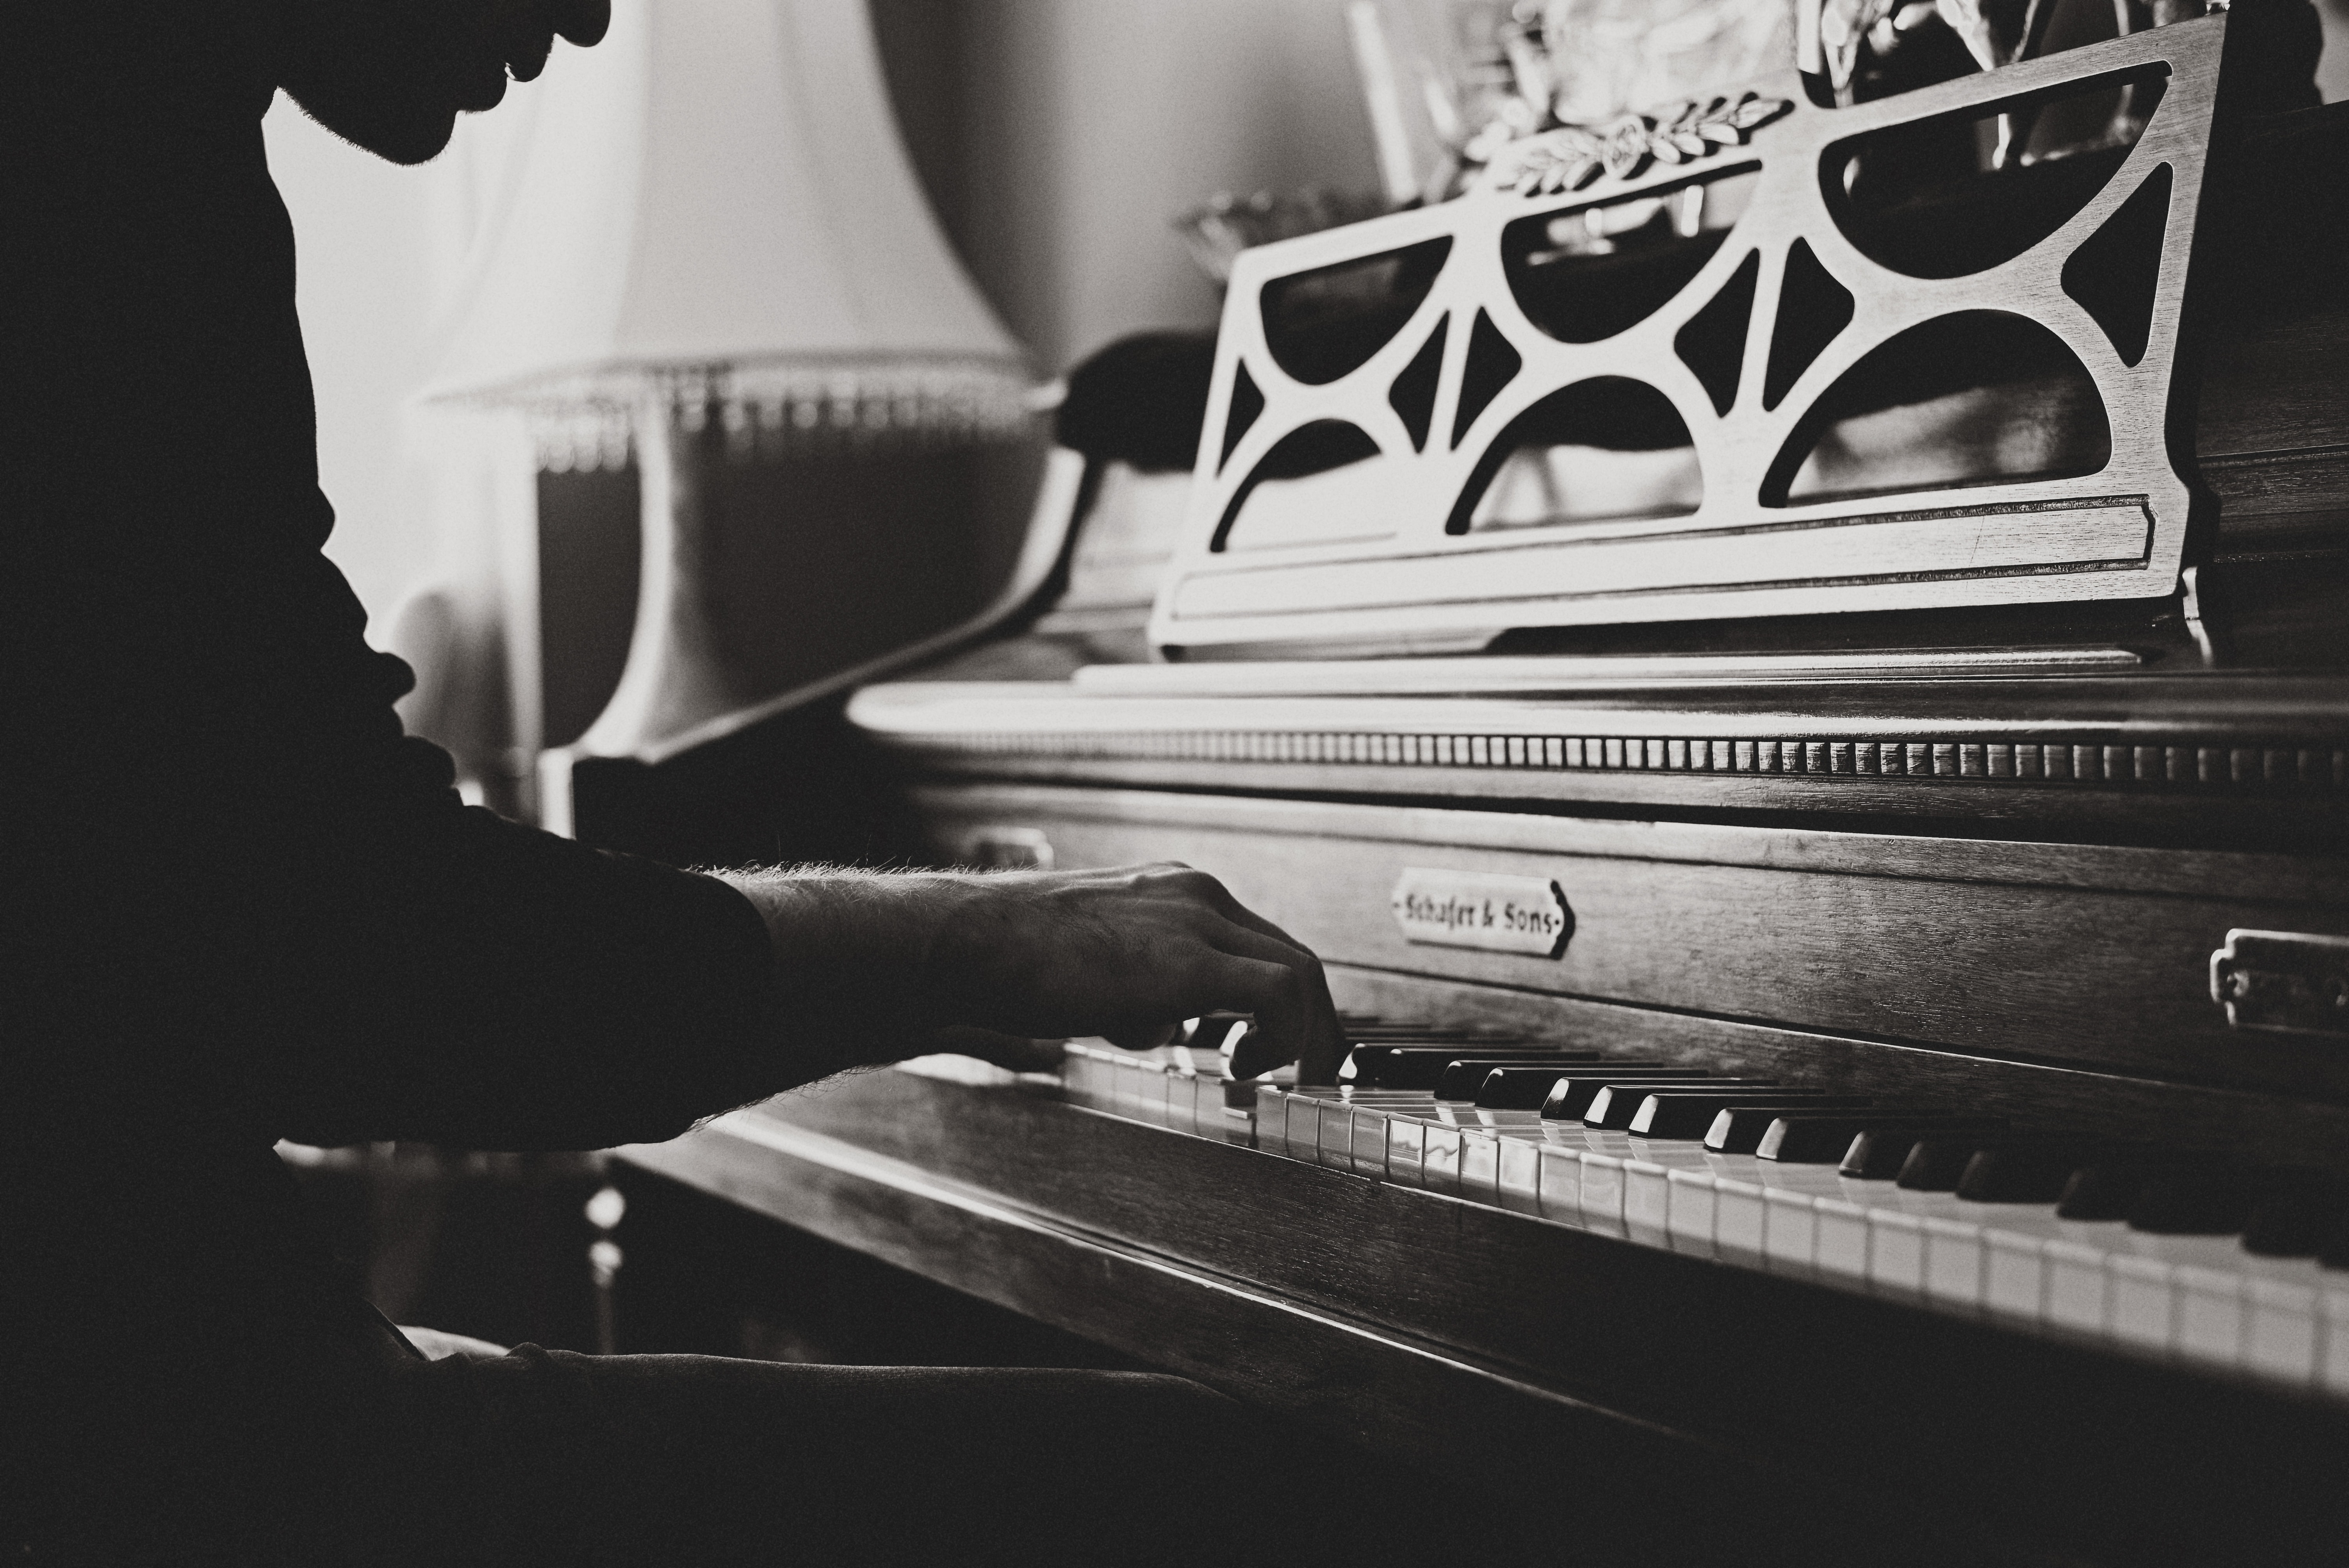 A black-and-white shot of a man playing a vintage piano